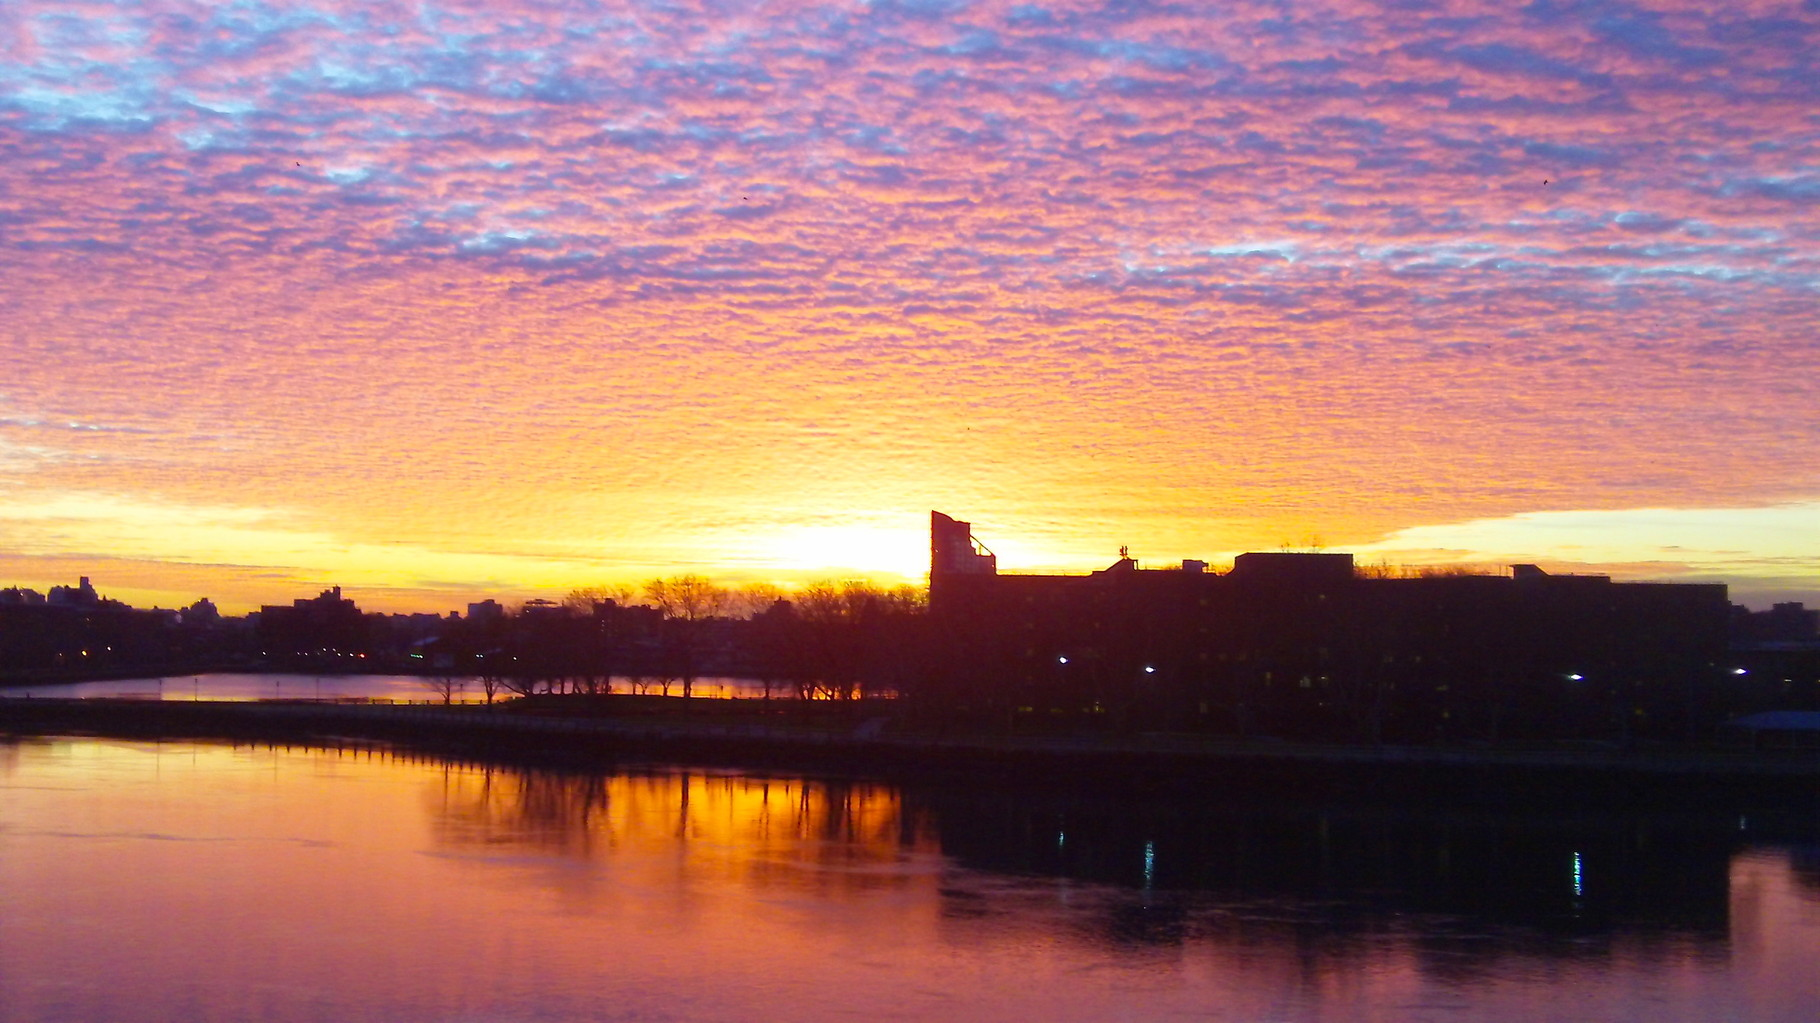 December 30, 2014 Sunrise above the East River, NYC